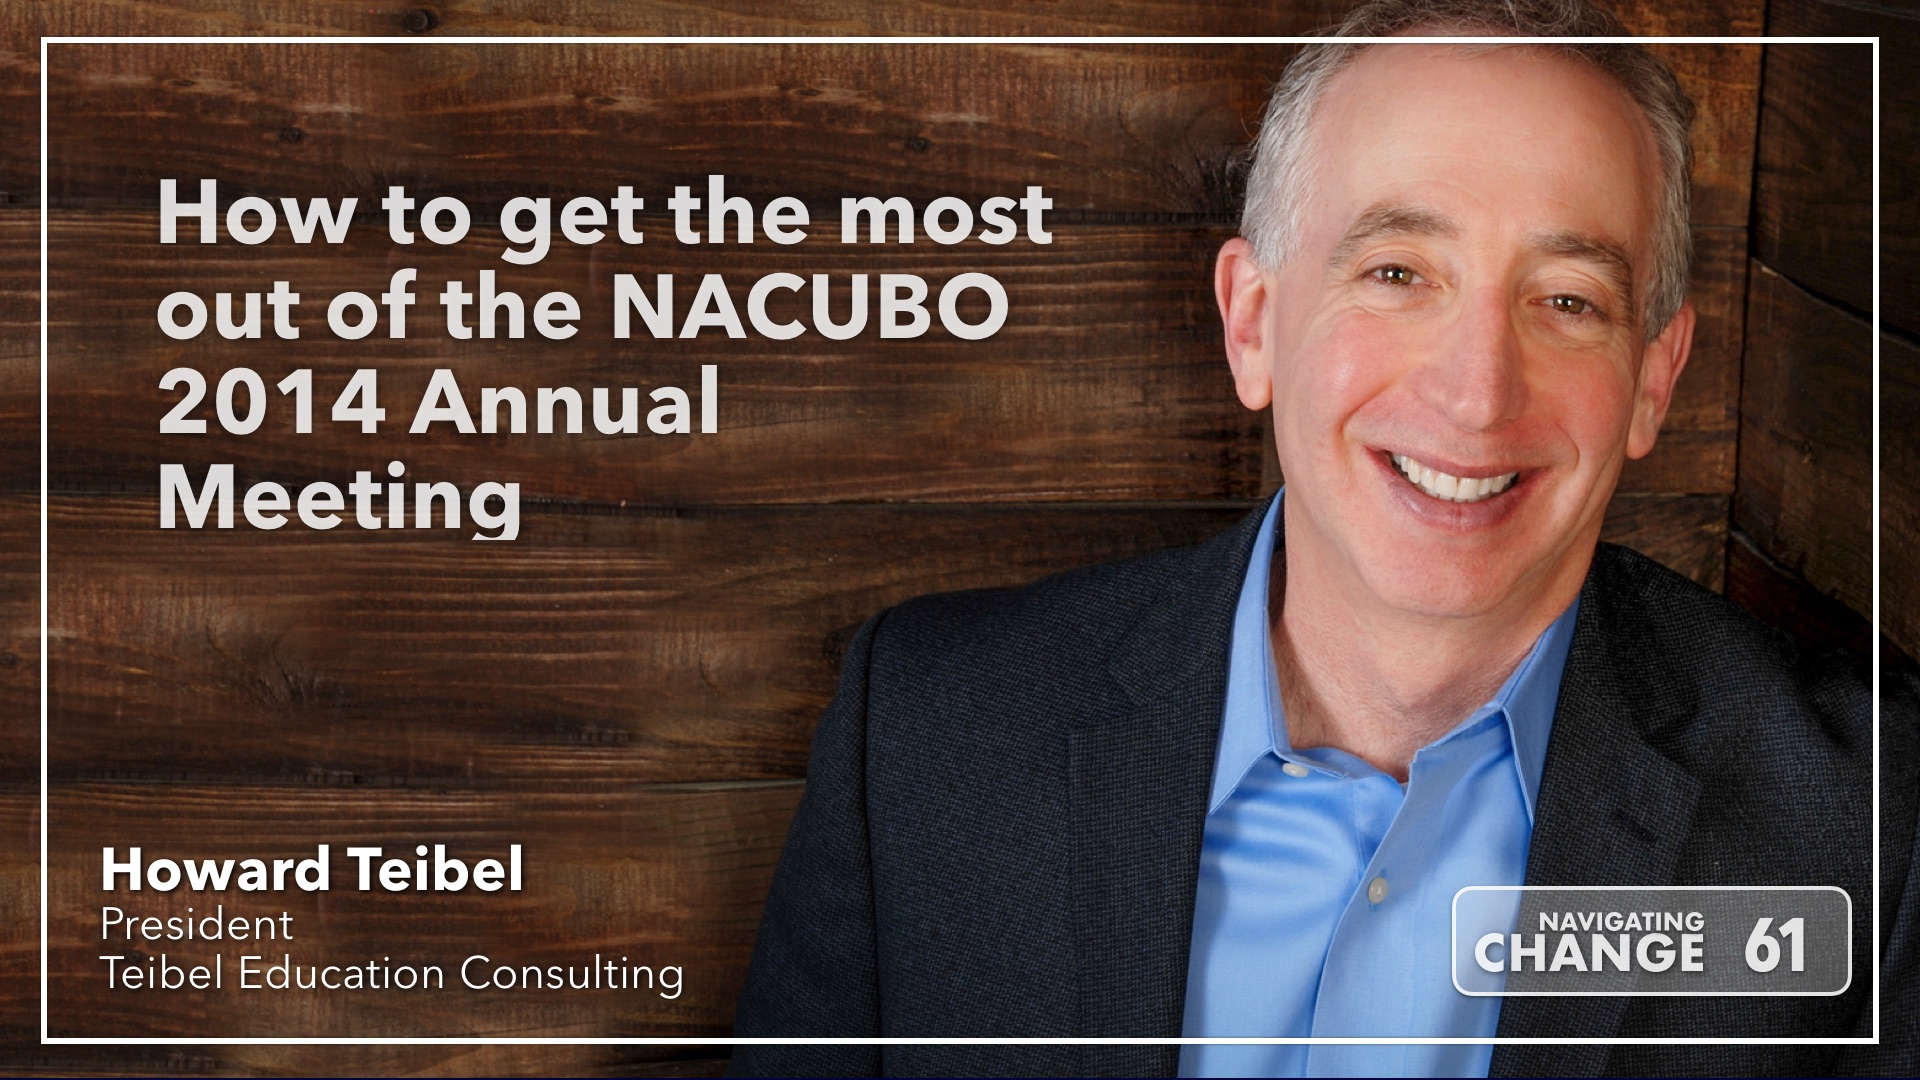 Listen to How to get the most out of the NACUBO 2014 Annual Meeting on Navigating Change The Education Podcast